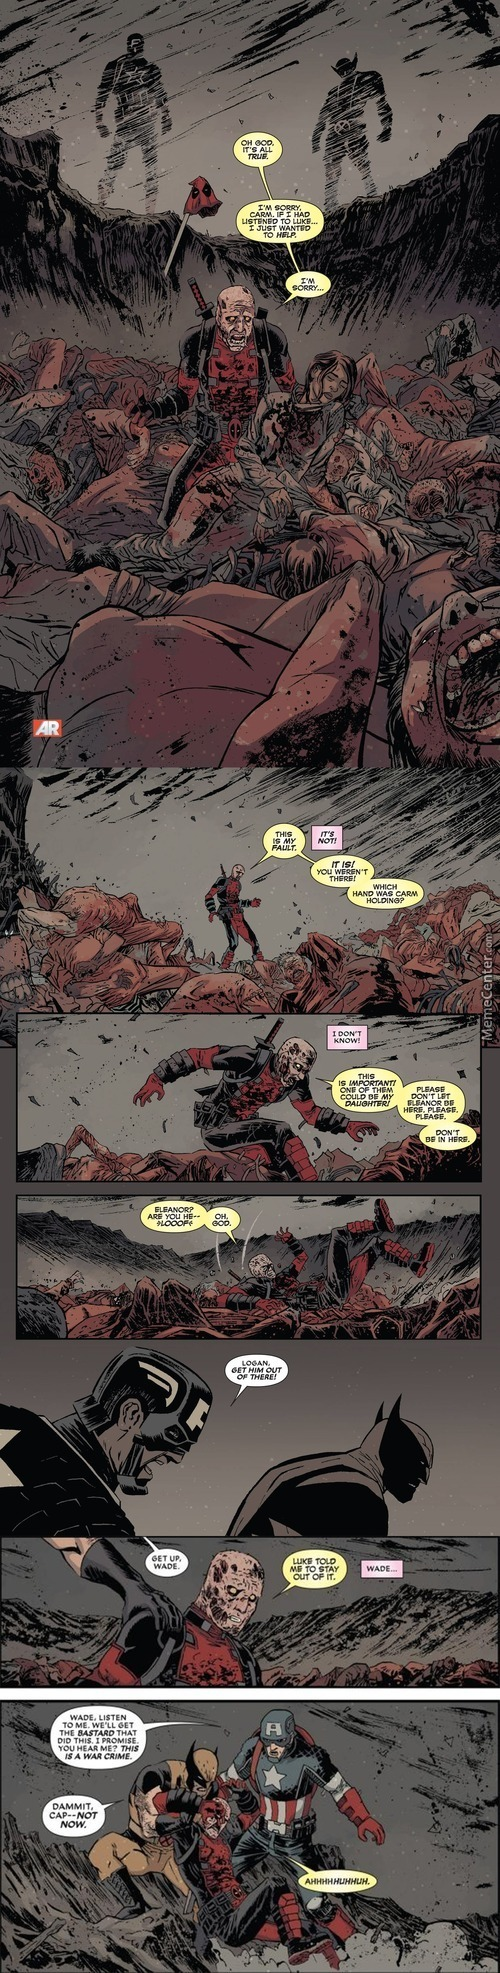 Deadpool Found The Mother Of His Child In A Mass Grave And Had A Total Mental Breakdown